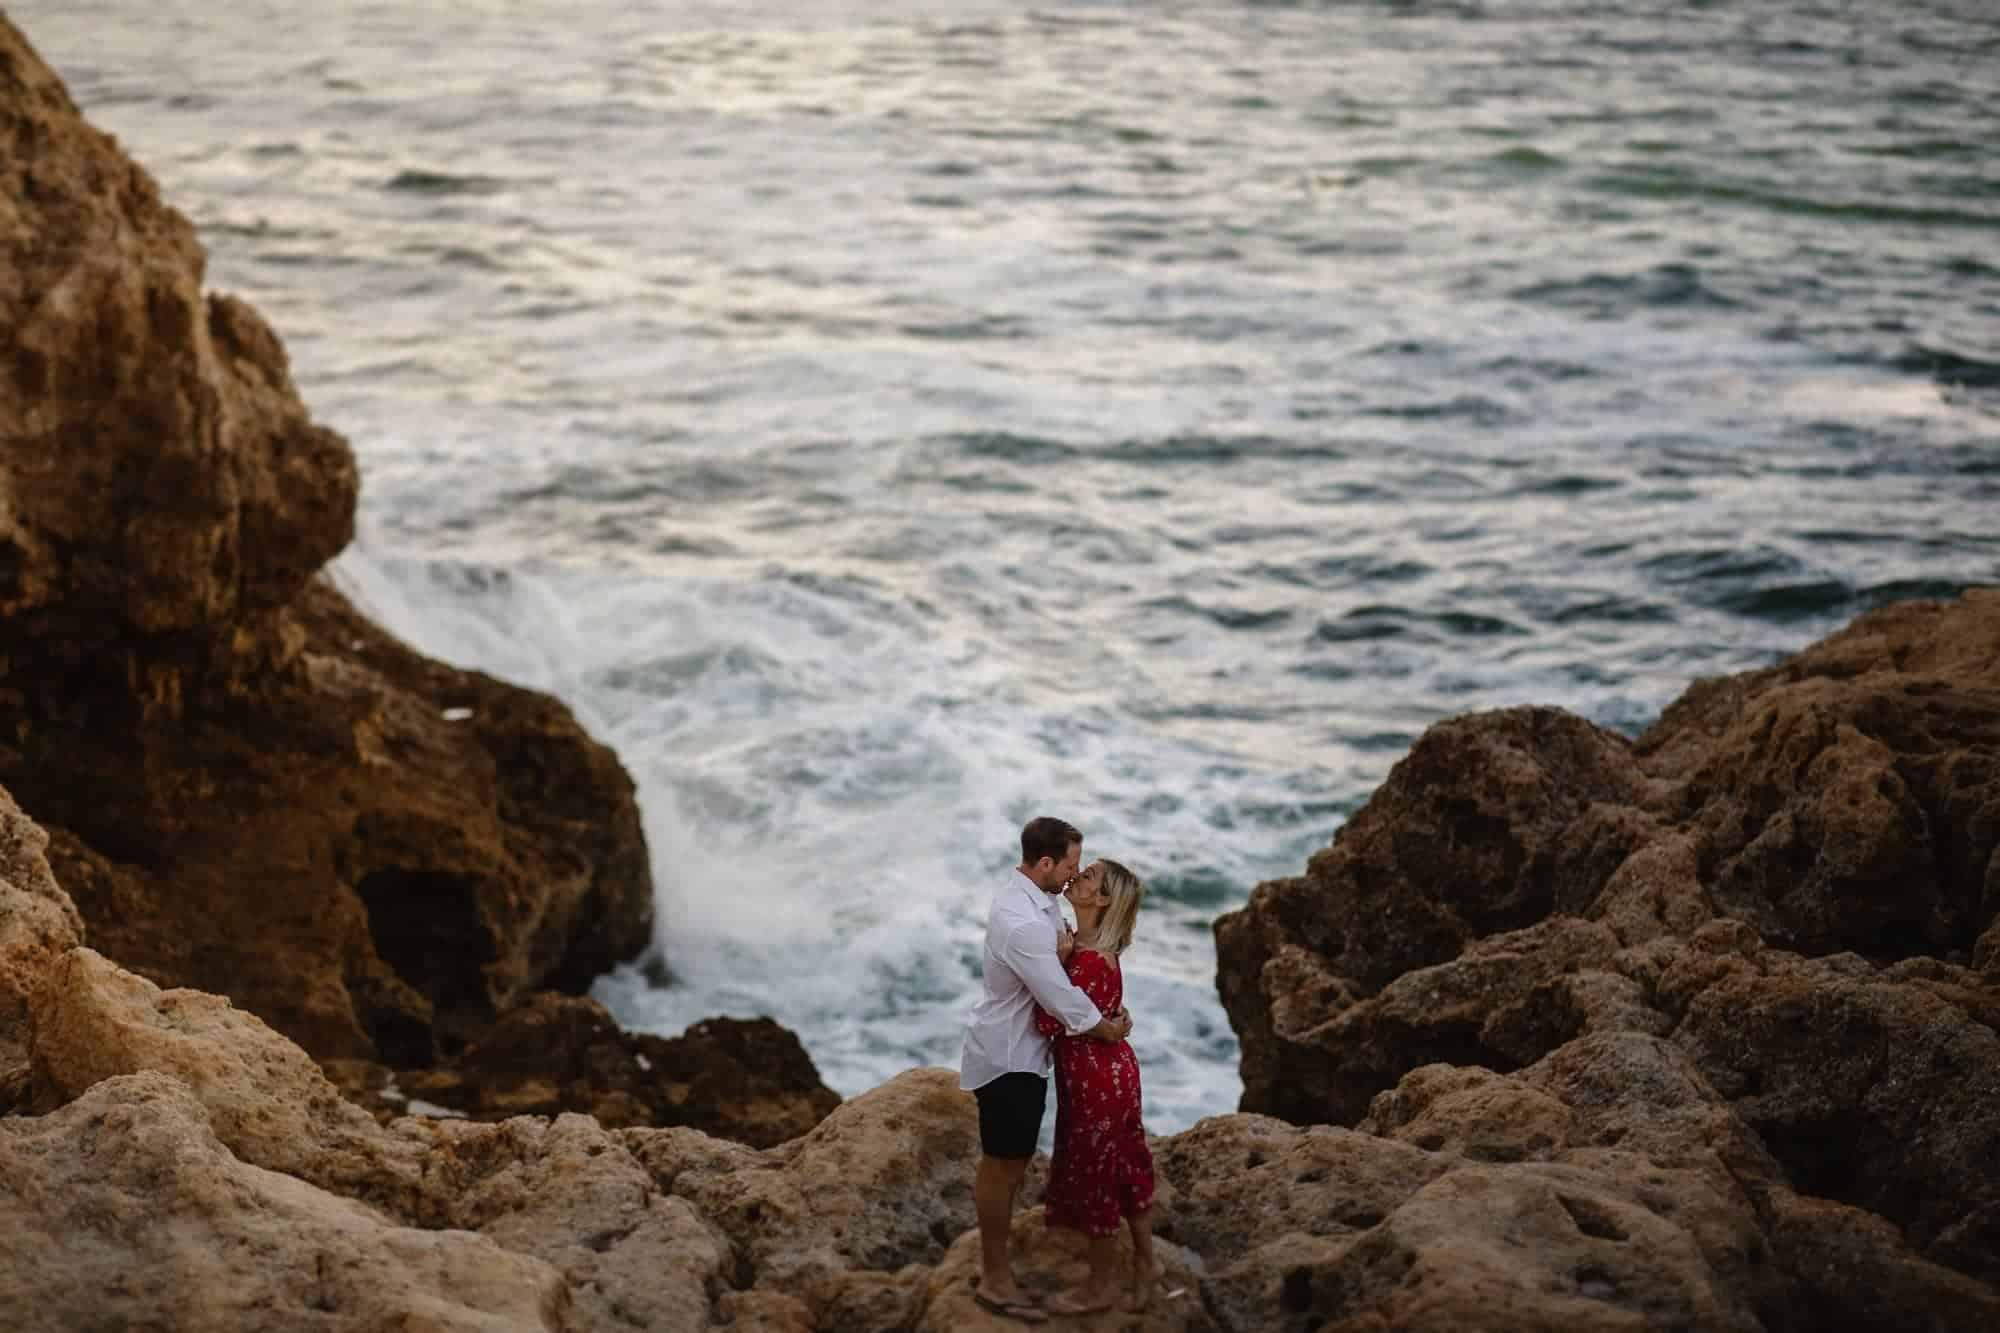 Couple on the rocks at Algar Seco in Carvoeiro, Portugal